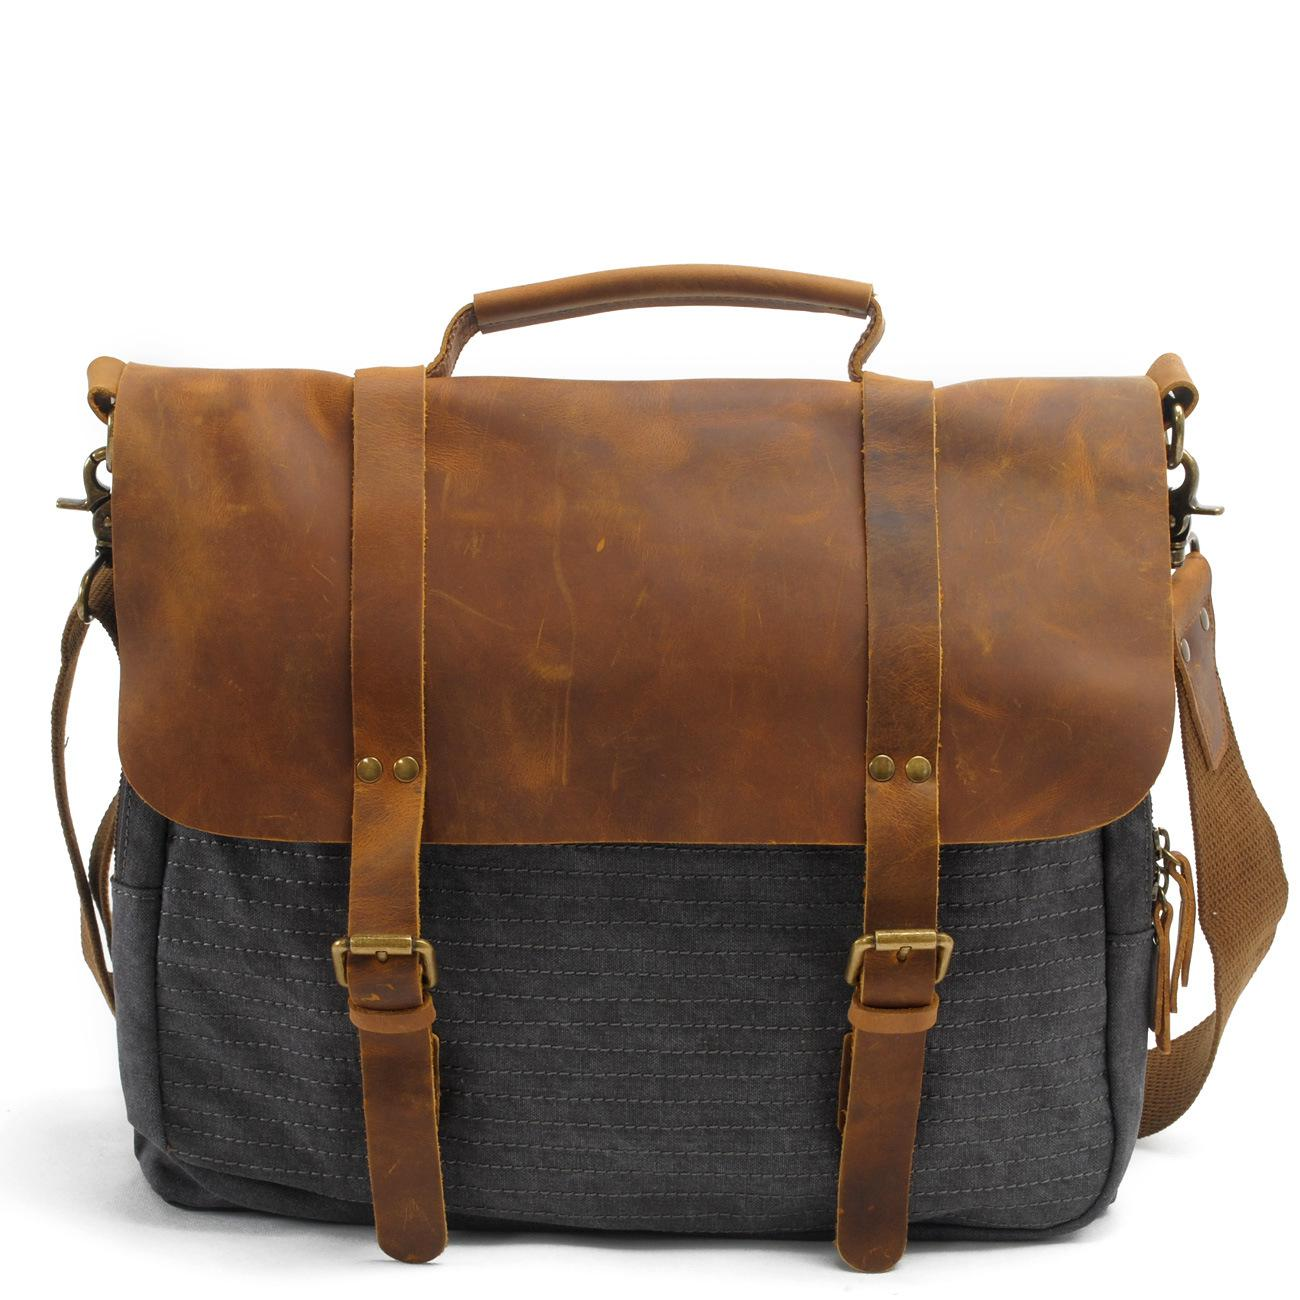 2016 Real Promotion Totes Vintage Military Canvas Crazy Horse Men Bags Carry On Laptop Duffel Bag Tote Large Weekend Overnight augur new canvas leather carry on luggage bags men travel bags men travel tote large capacity weekend bag overnight duffel bags